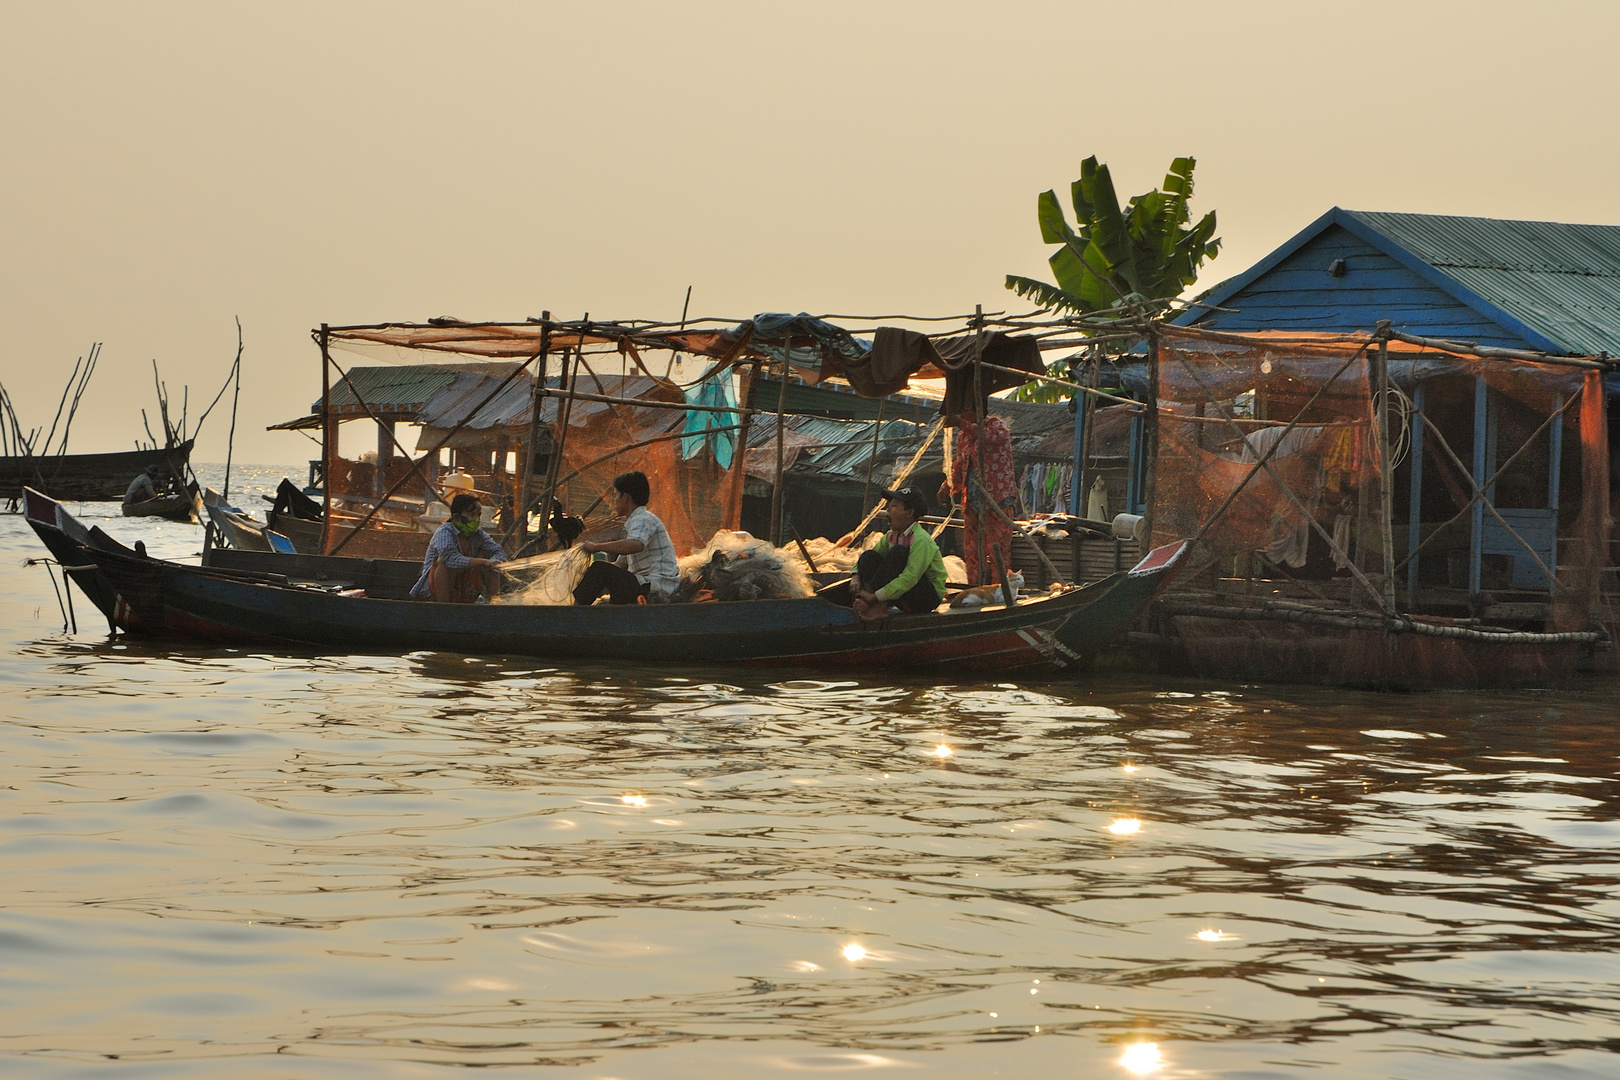 Fisher come home to their floating house on the Tonlé Sap river